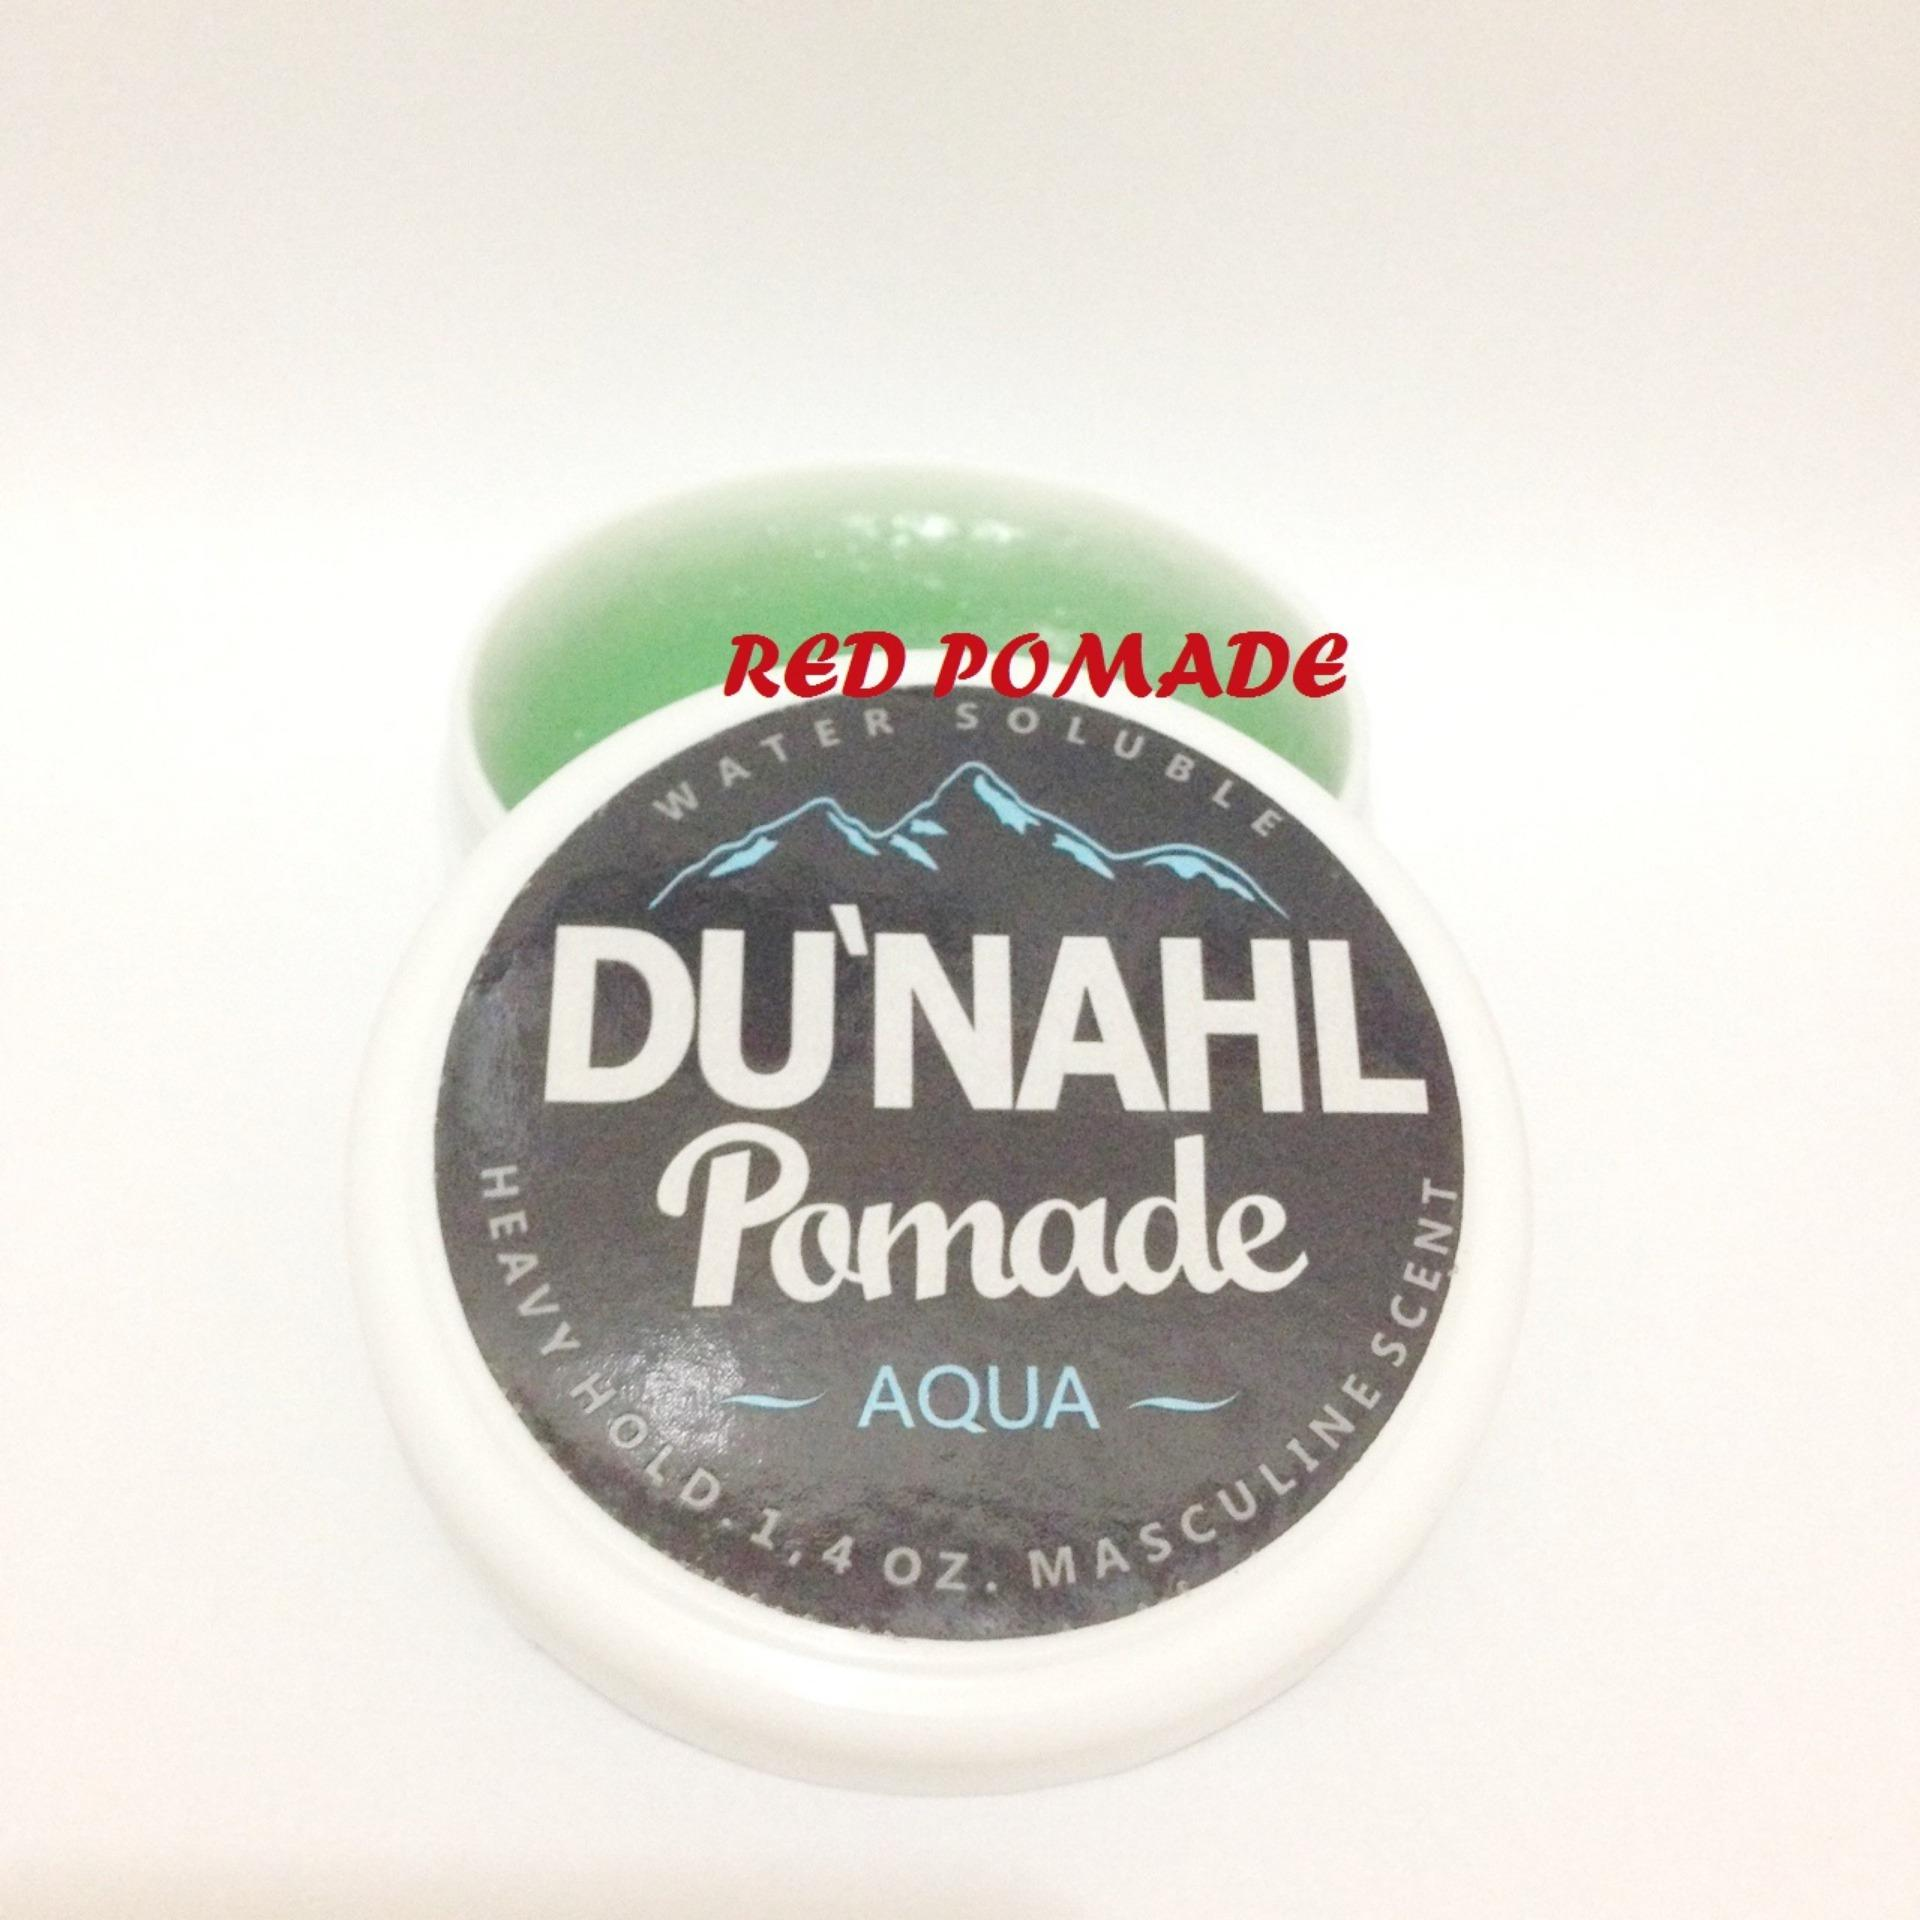 ULASAN POMADE DUNAHL DU'NAHL MINI AQUA 1.4 OZ HEAVY HOLD WATERBASED WATER BASED TRAVEL SIZE + FREE SISIR SAKU Terbagus